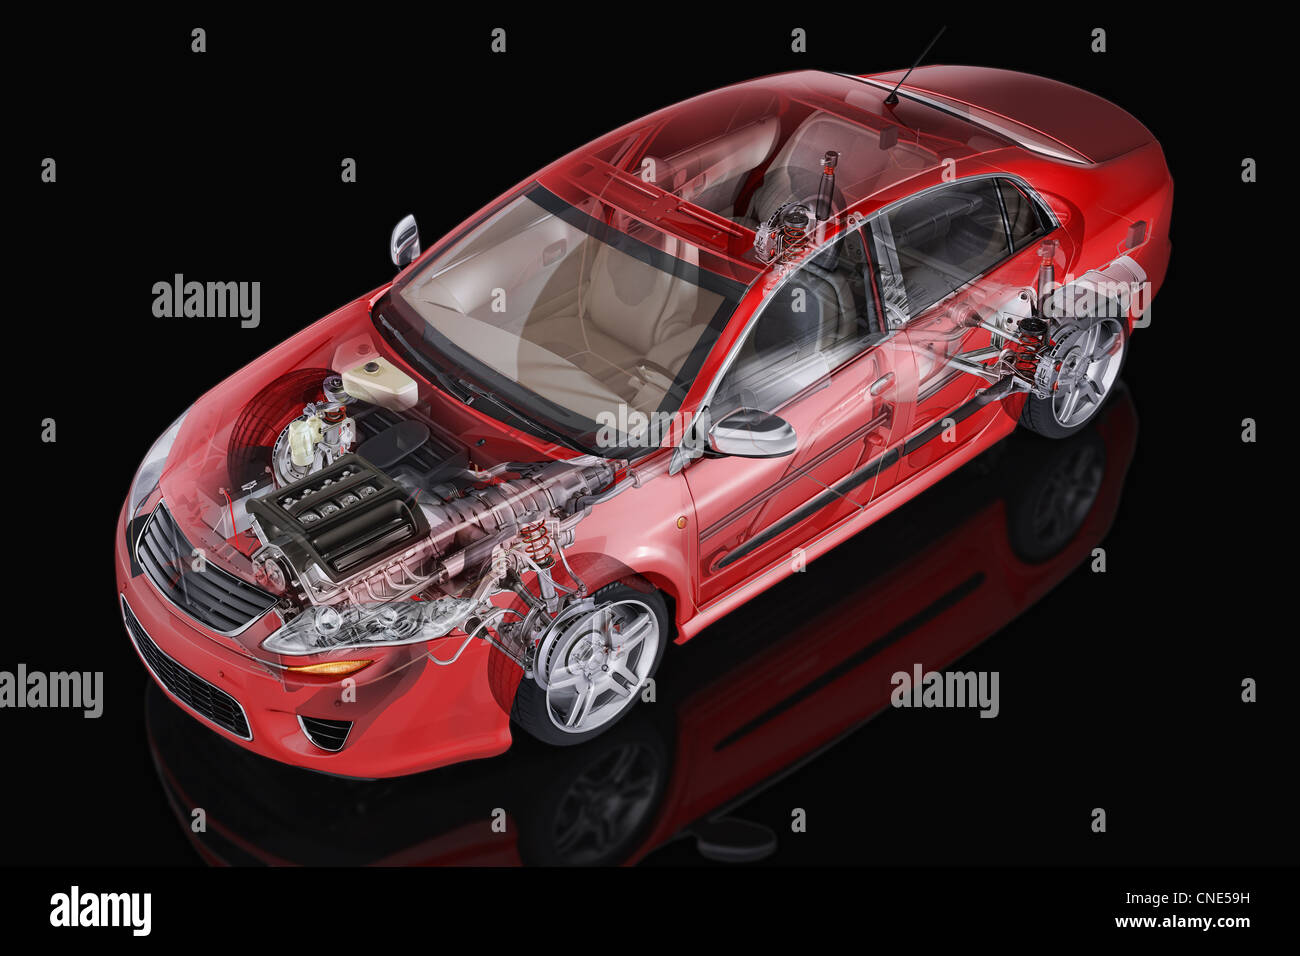 Generic Red sedan car detailed cutaway representation, with ghost effect, on black background. Clipping path included. - Stock Image